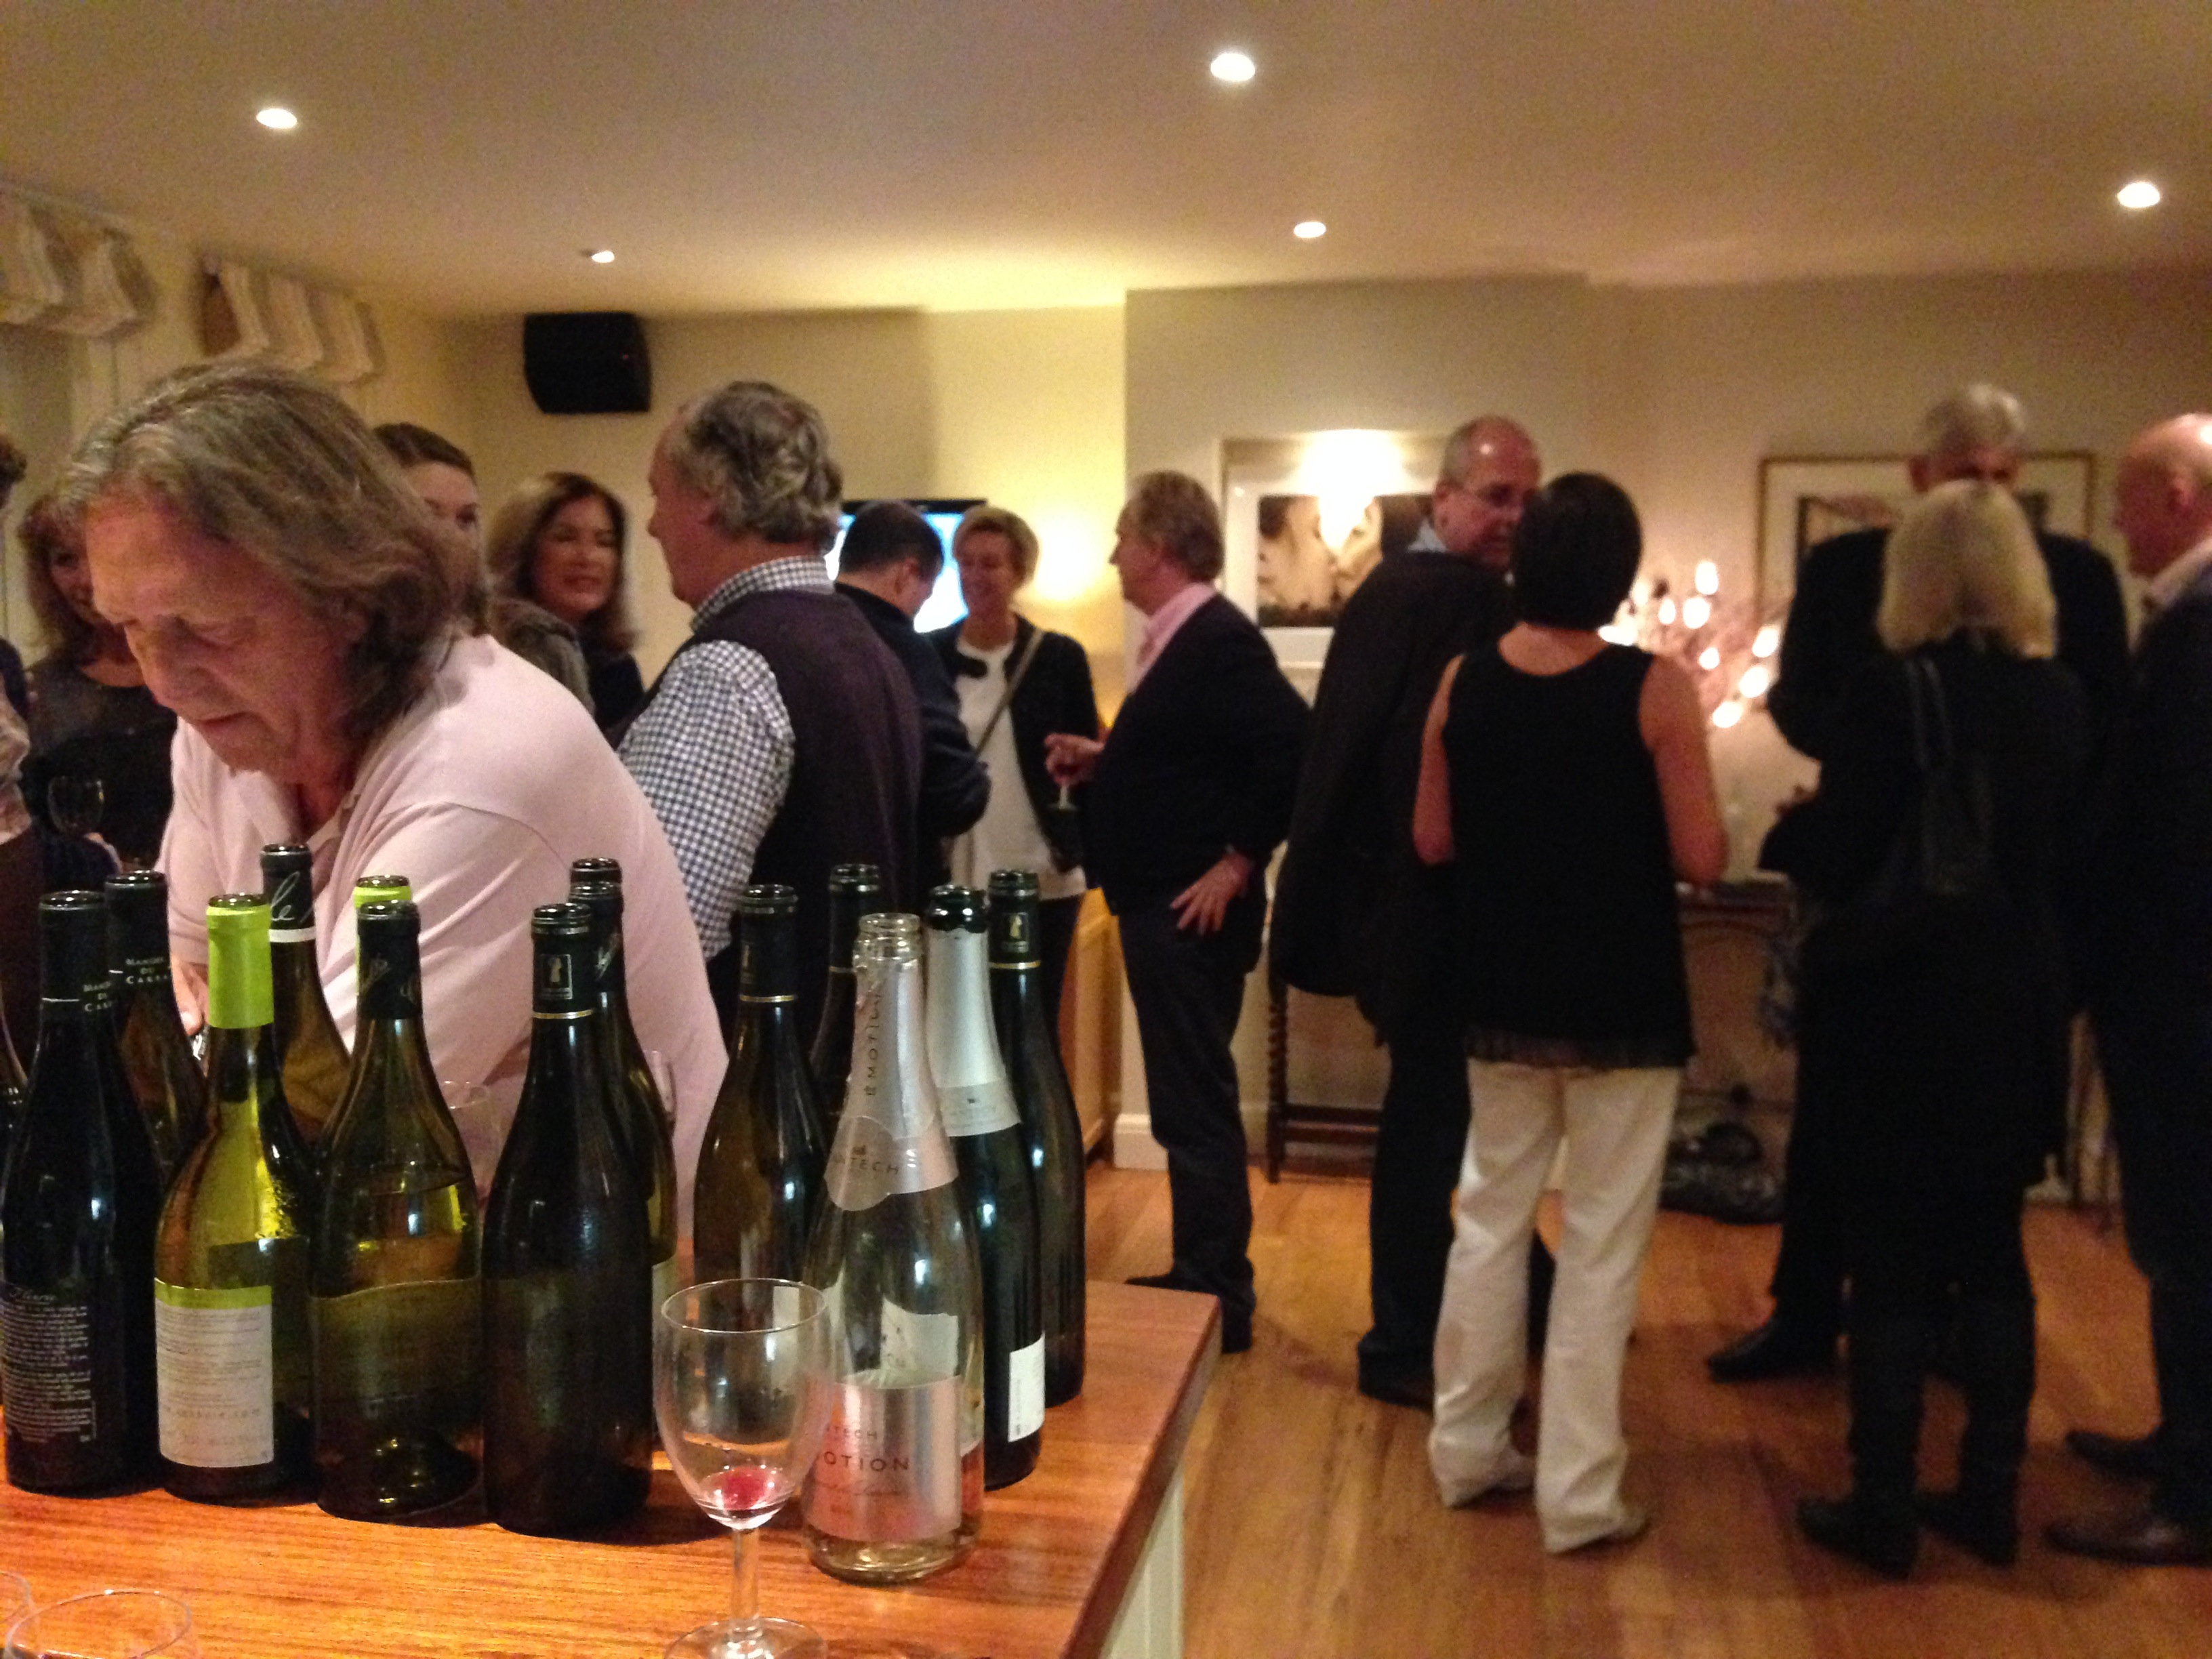 Morgan Jupe Luxury Catered Ski Chalets Morzine - Blog - Wine tasting London